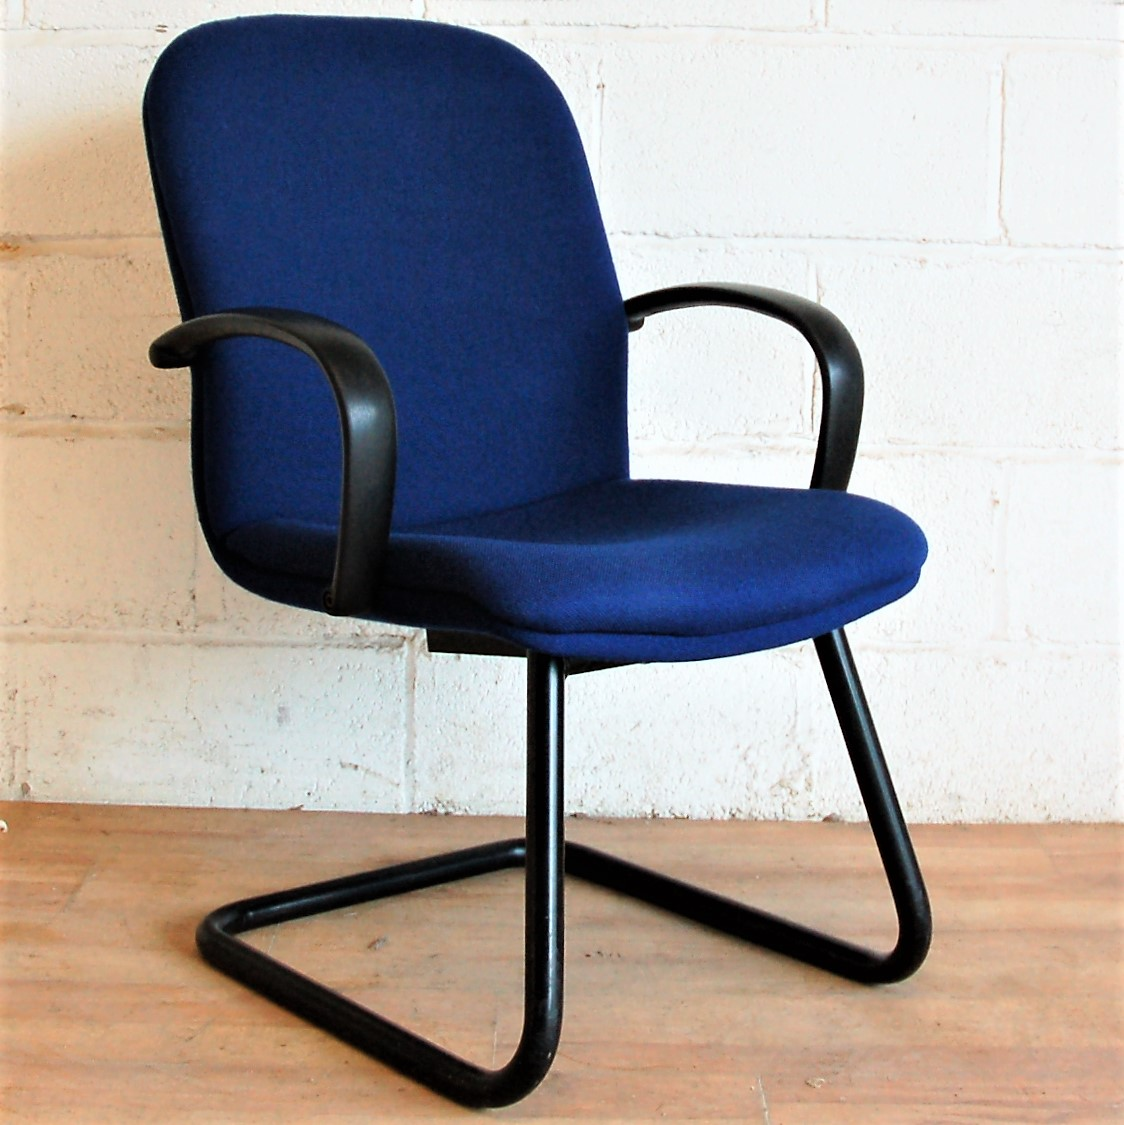 Blue Meeting Room Chairs 1090  Used Meeting Room Chairs